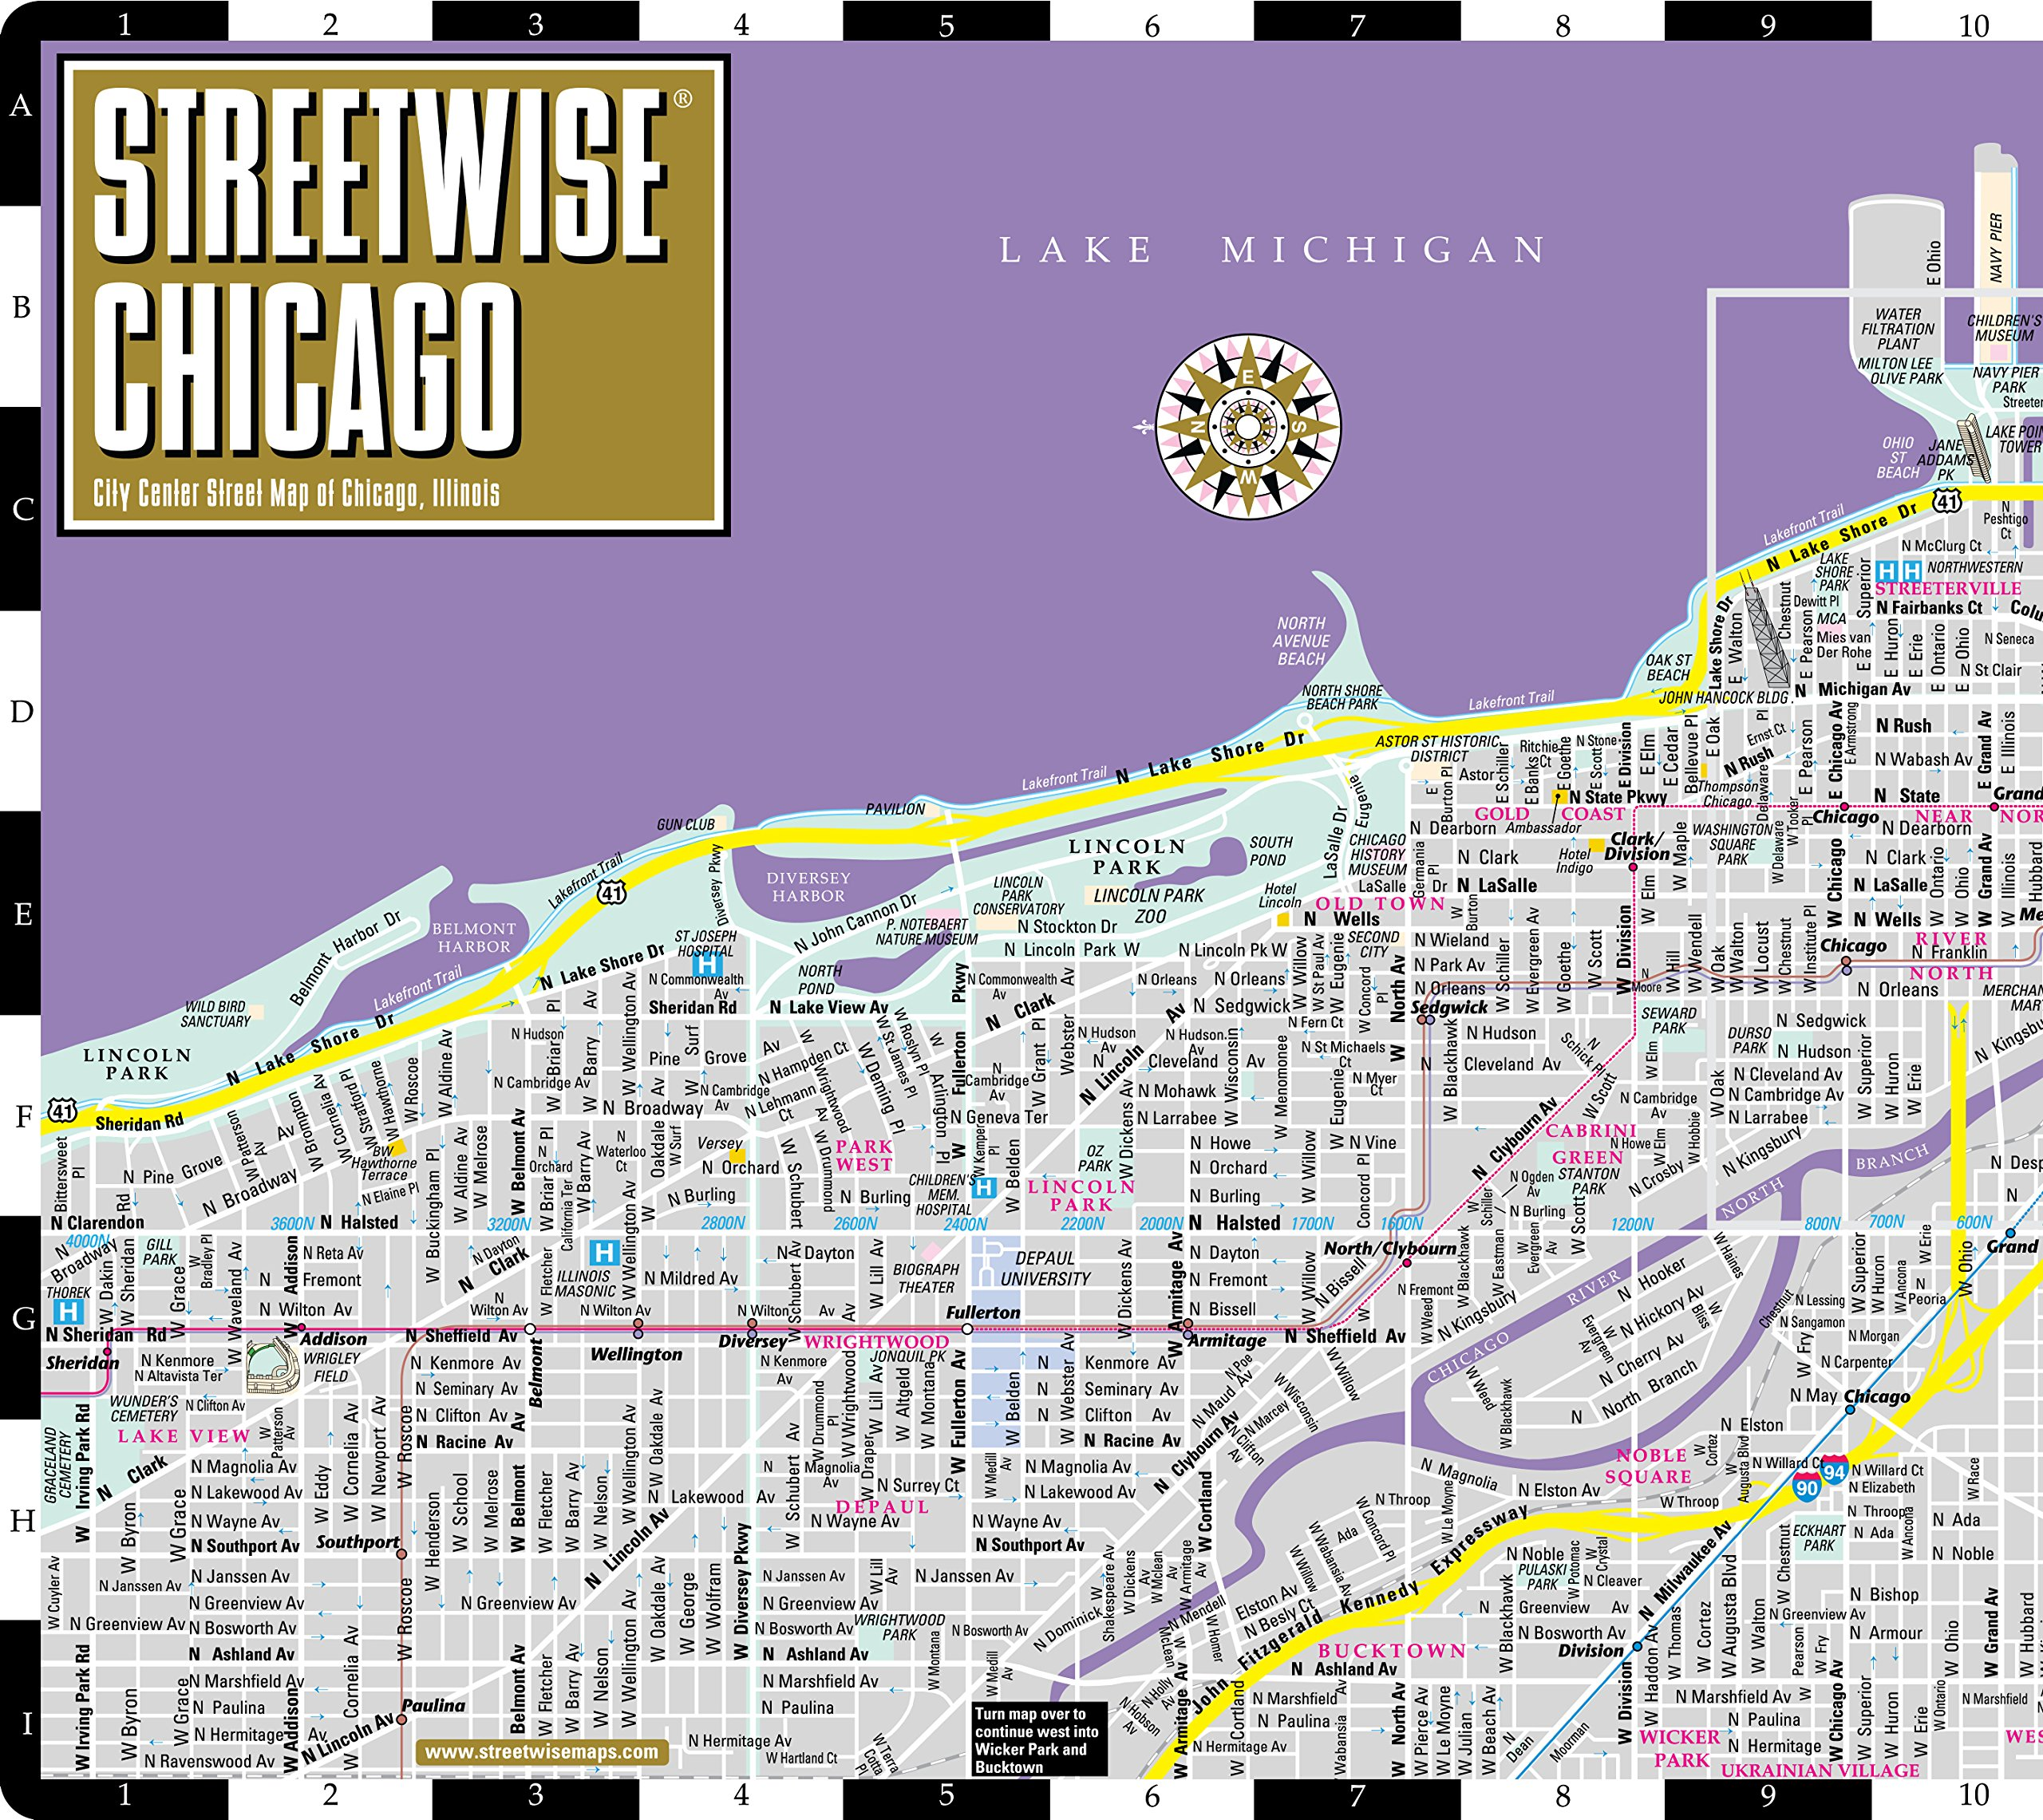 Chicago Street Map Streetwise Chicago Map   Laminated City Center Street Map of  Chicago Street Map